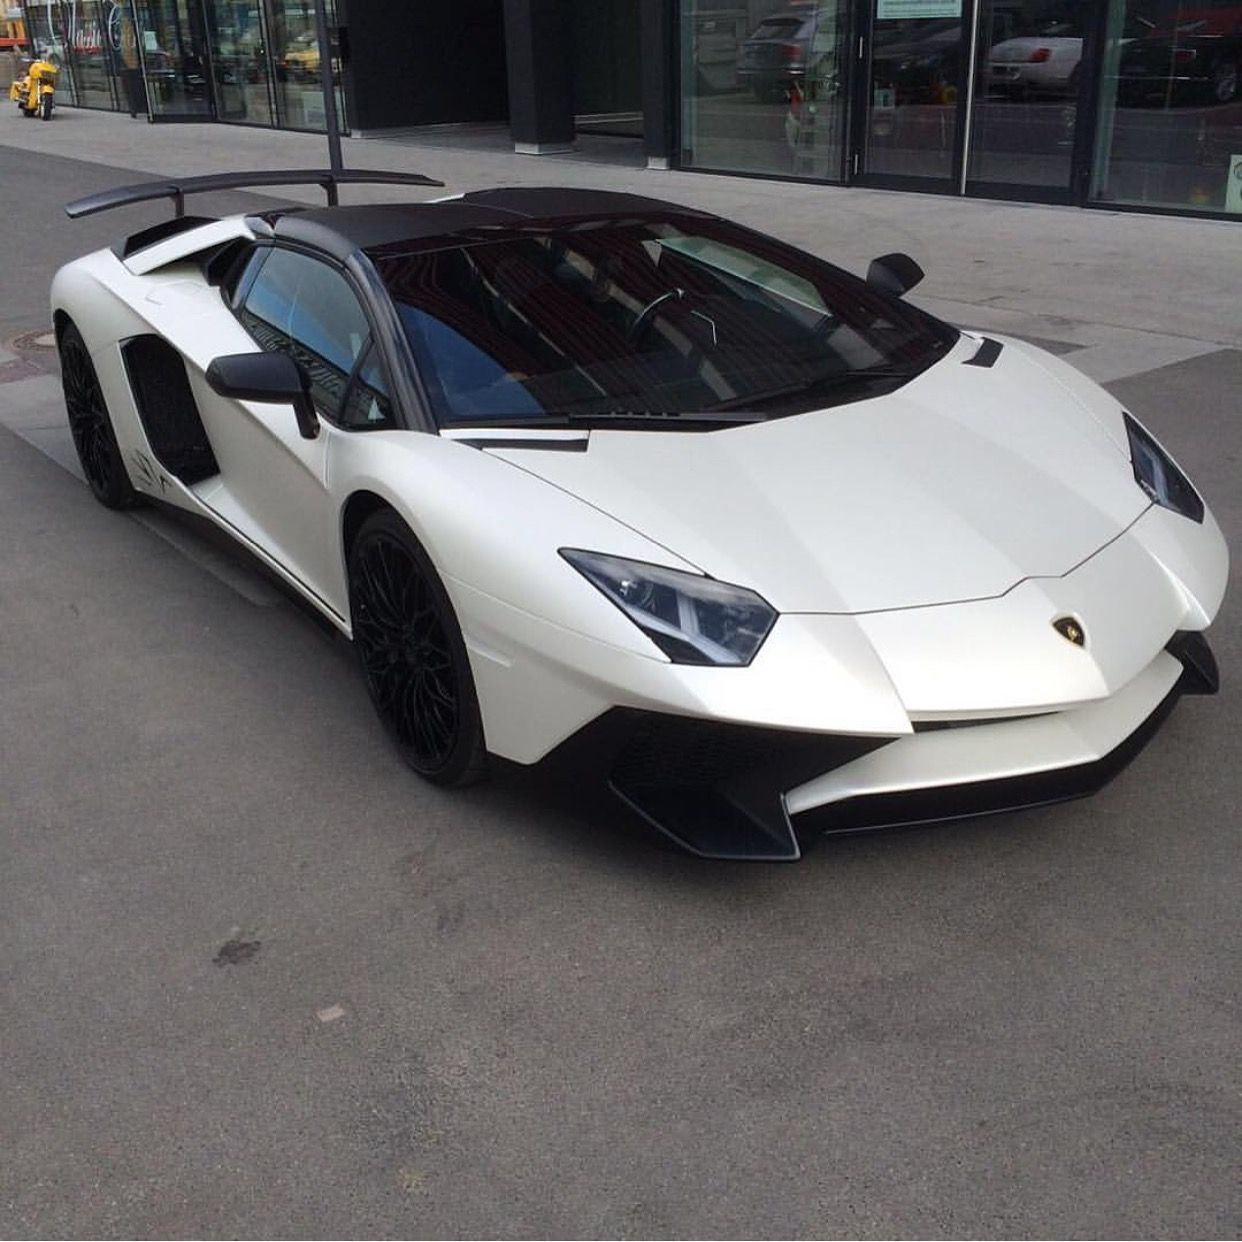 Lamborghini Aventador Super Veloce Roadster Painted In